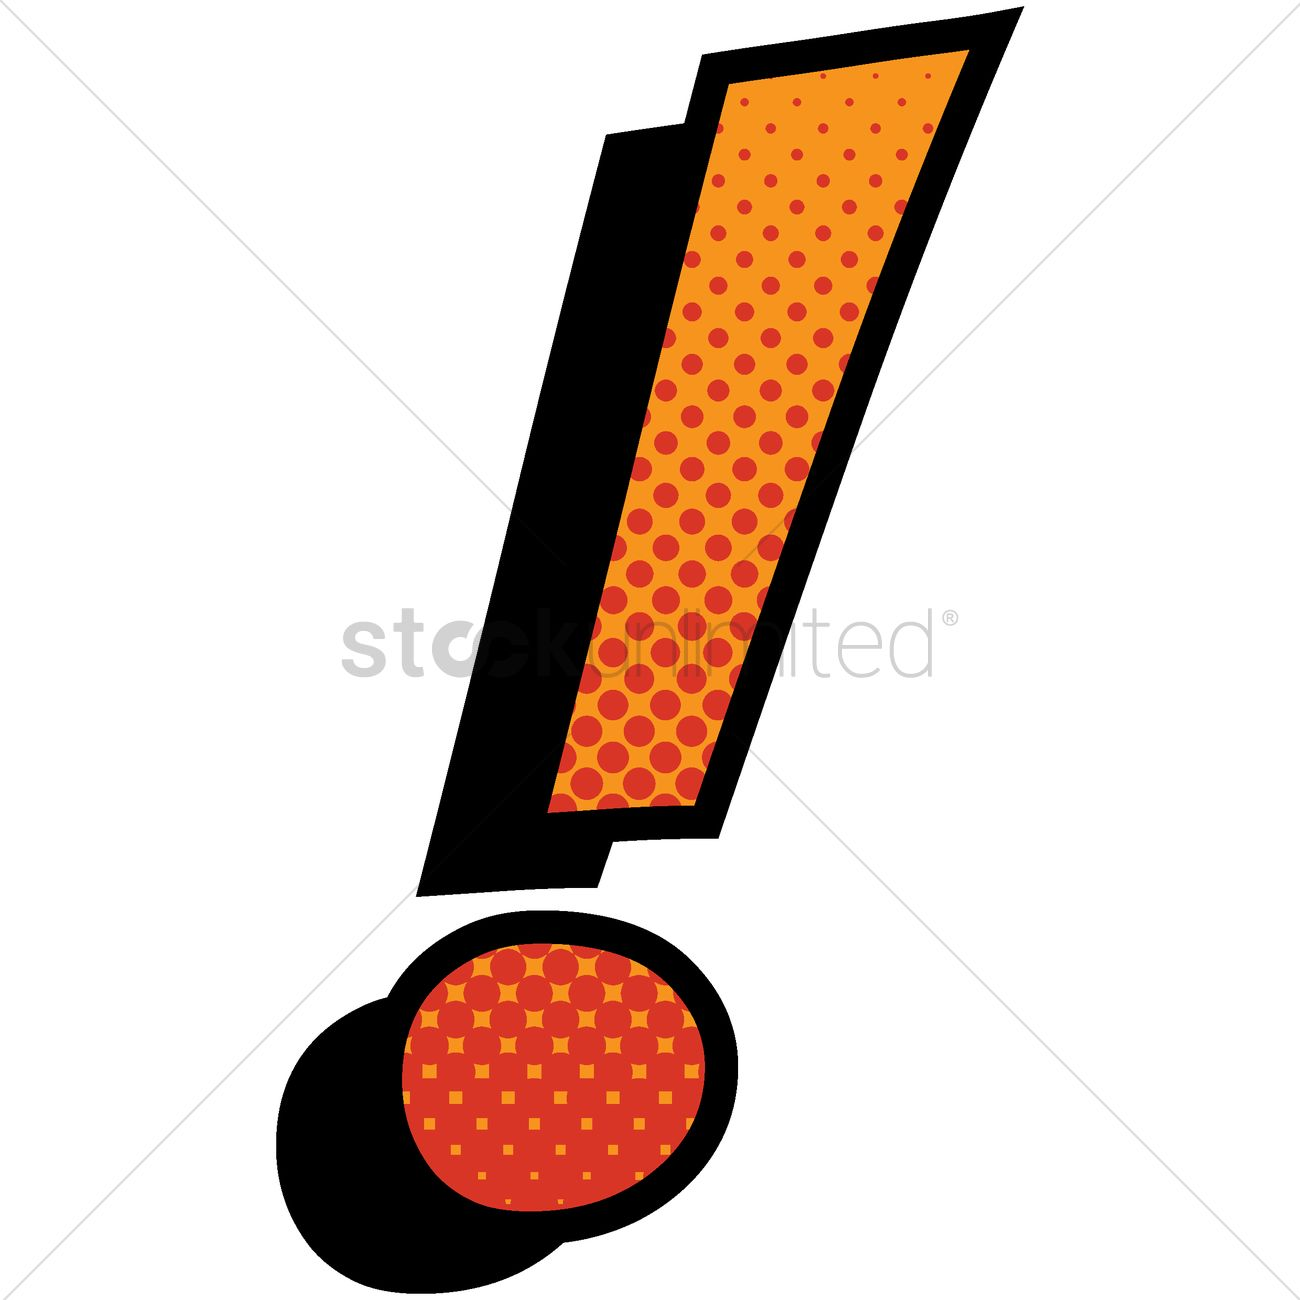 exclamation point vector image 1631951 stockunlimited rh stockunlimited com clipart point exclamation red exclamation point clipart